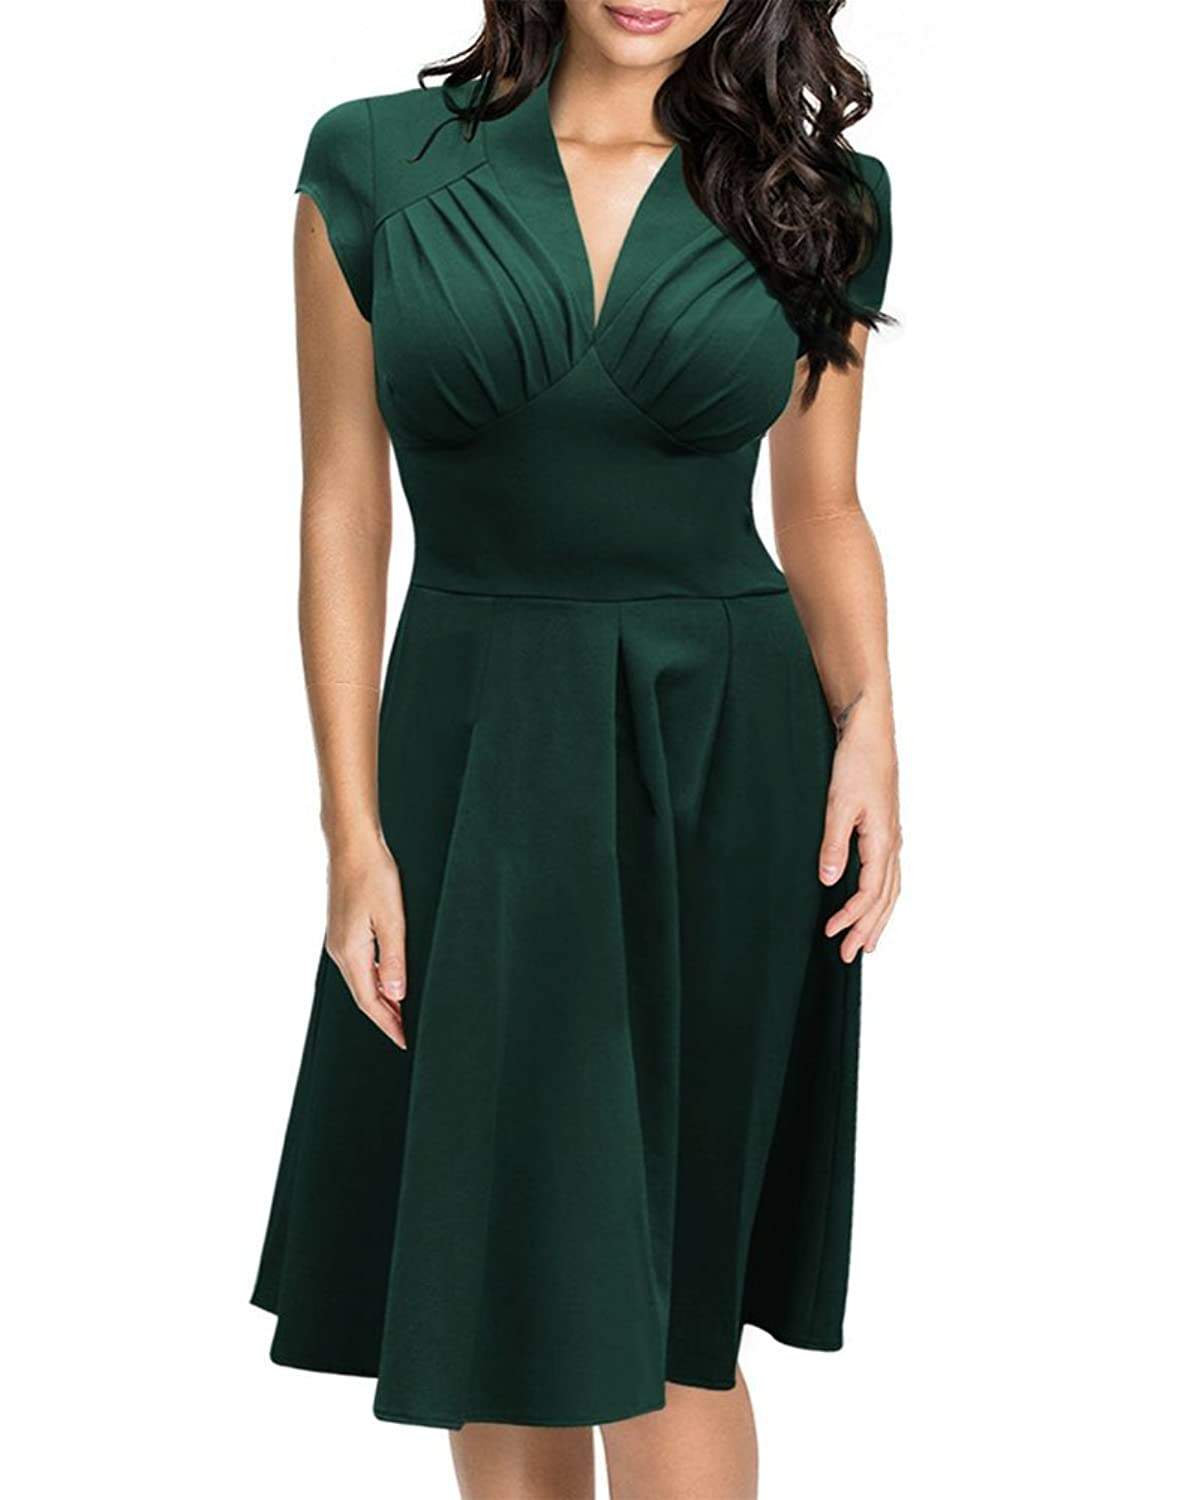 factory price d5df3 d0bd6 50%OFF Whoinshop Damen Elegant Vintage 50er Jahre Kleid 3/4 ...